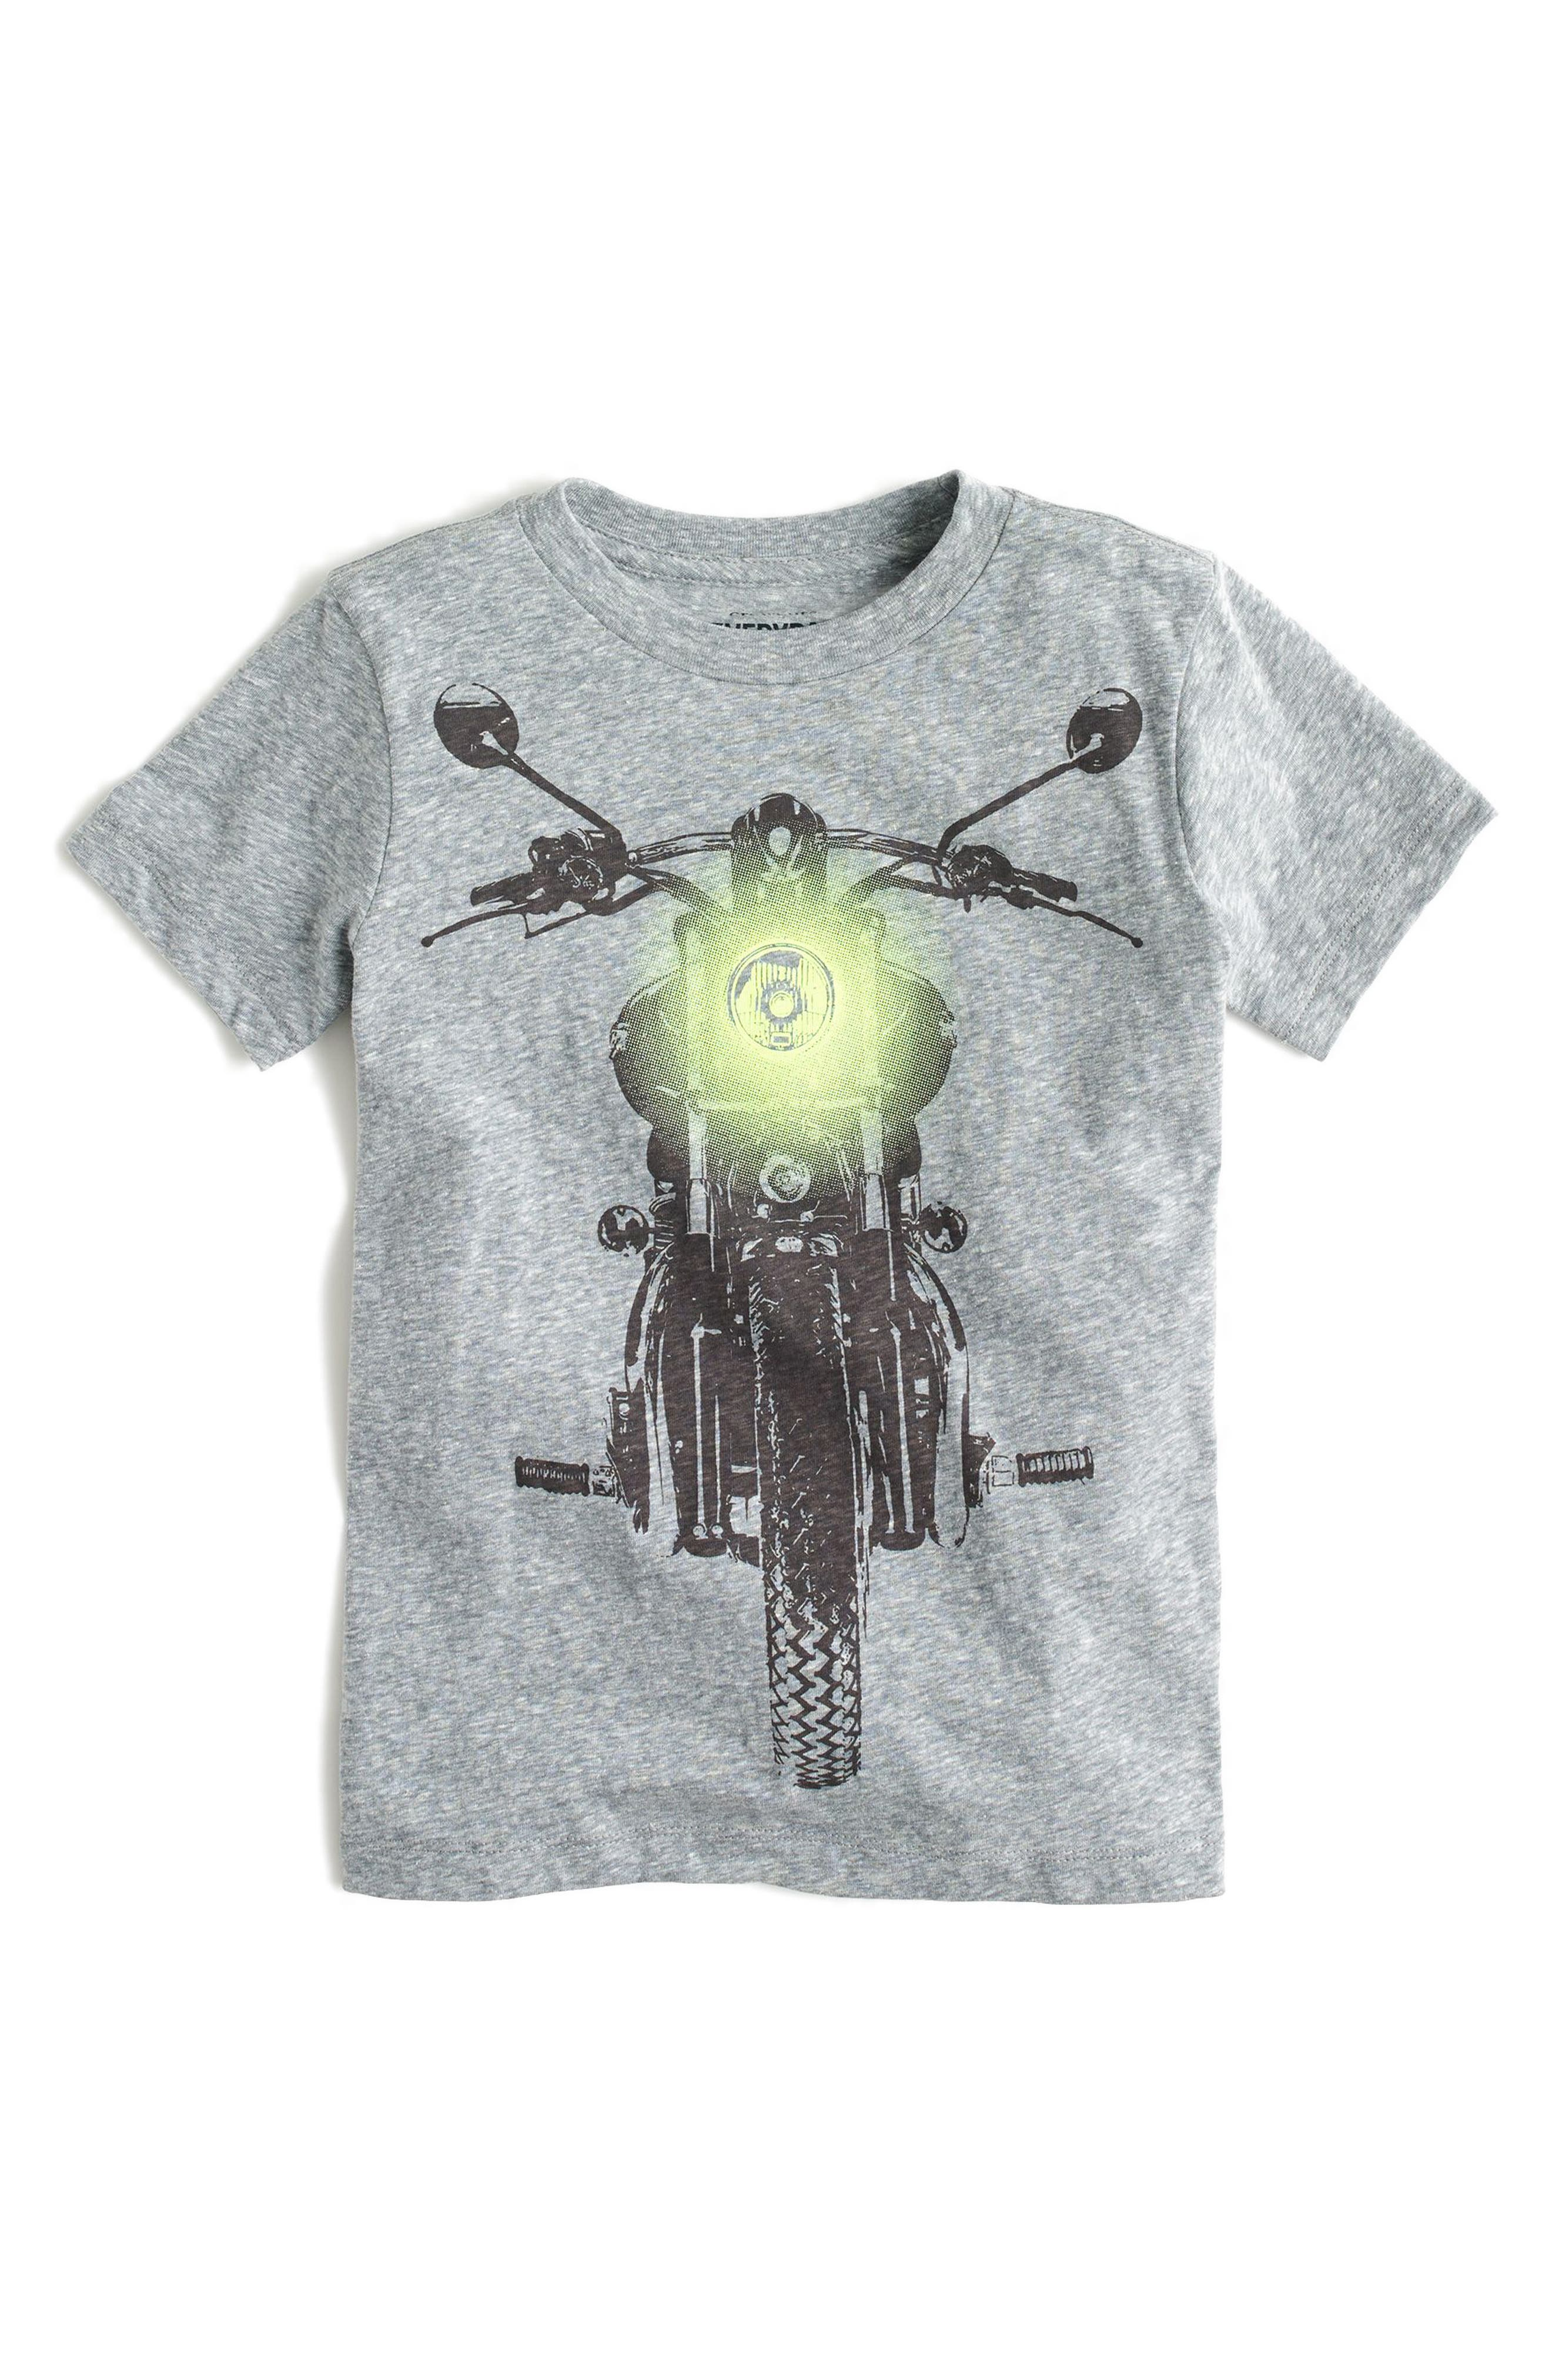 Glow in the Dark Motorcycle Graphic T-Shirt,                             Alternate thumbnail 2, color,